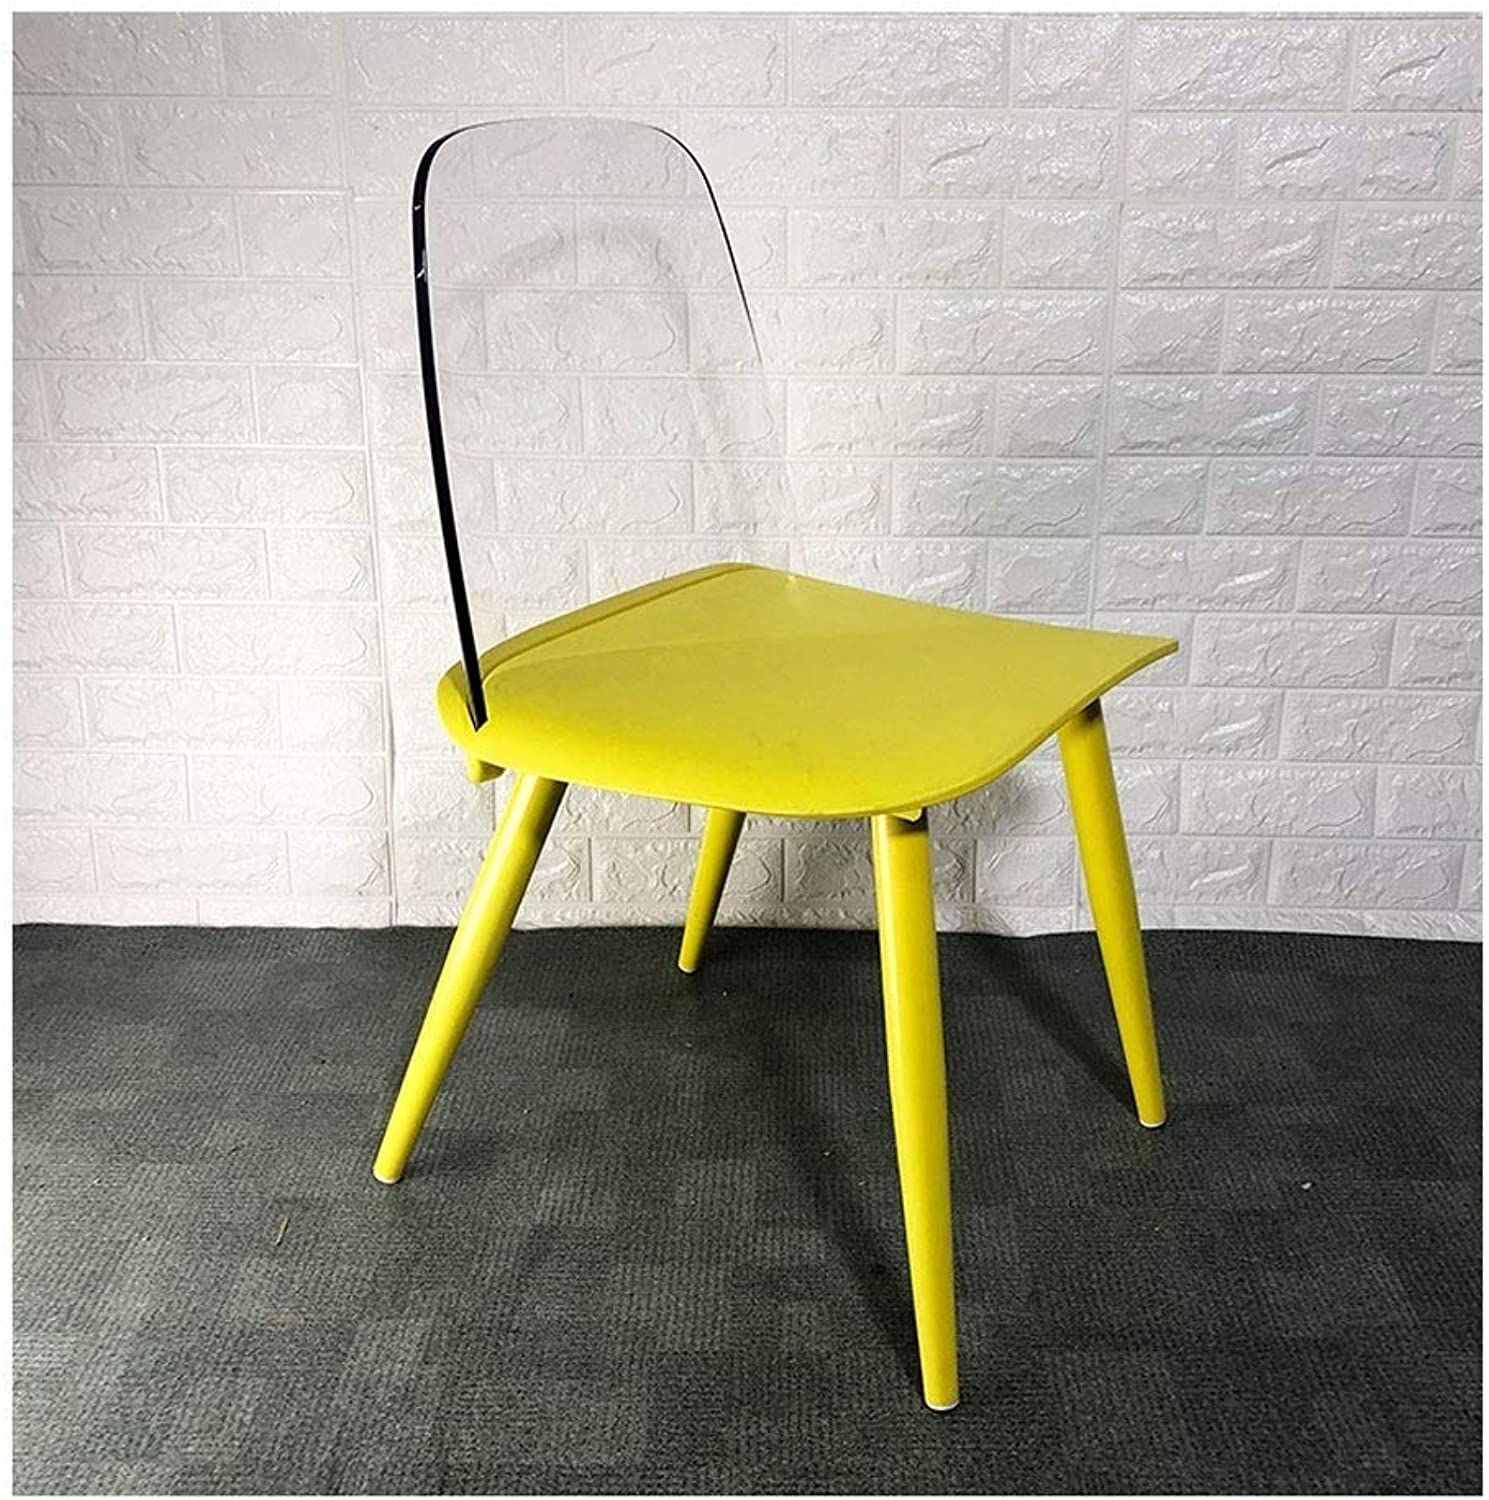 Modern Minimalist Home Acrylic Dining Chair Makeup Stool Creative Backrest Desk Chair Sitting Height 45cm LEBAO (color   Yellow)